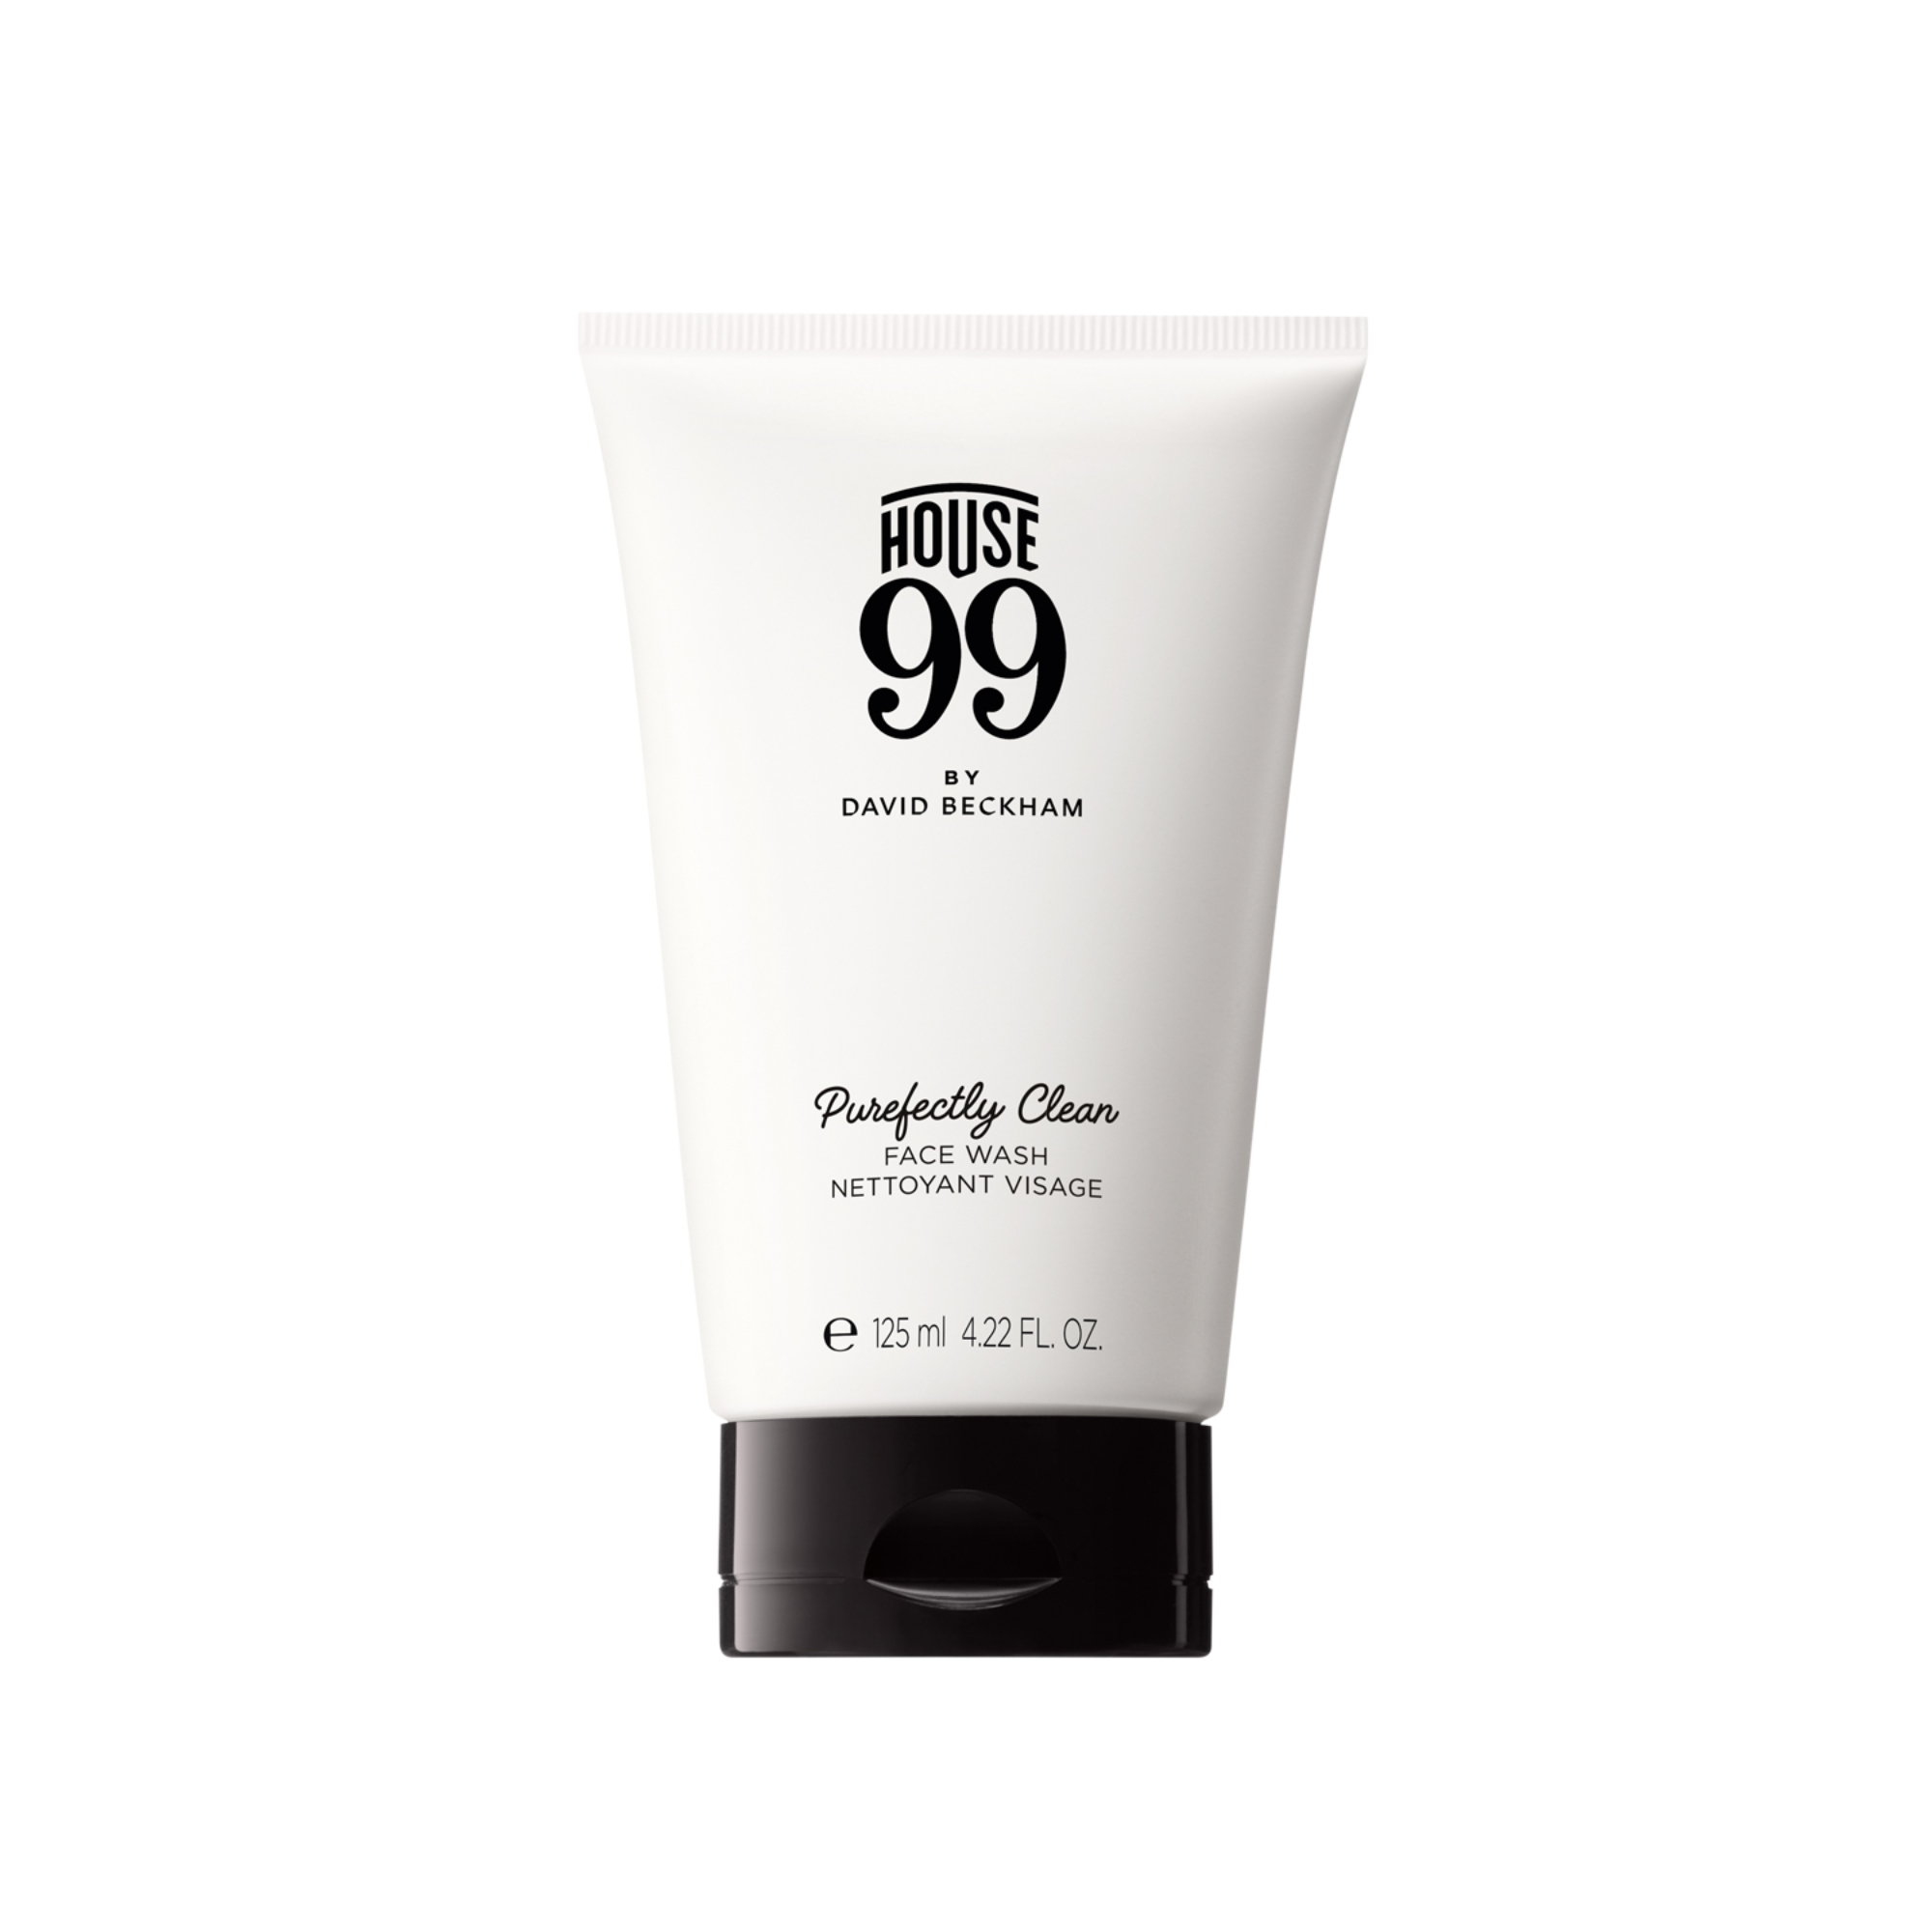 Purefectly Clean Face Wash 125ml